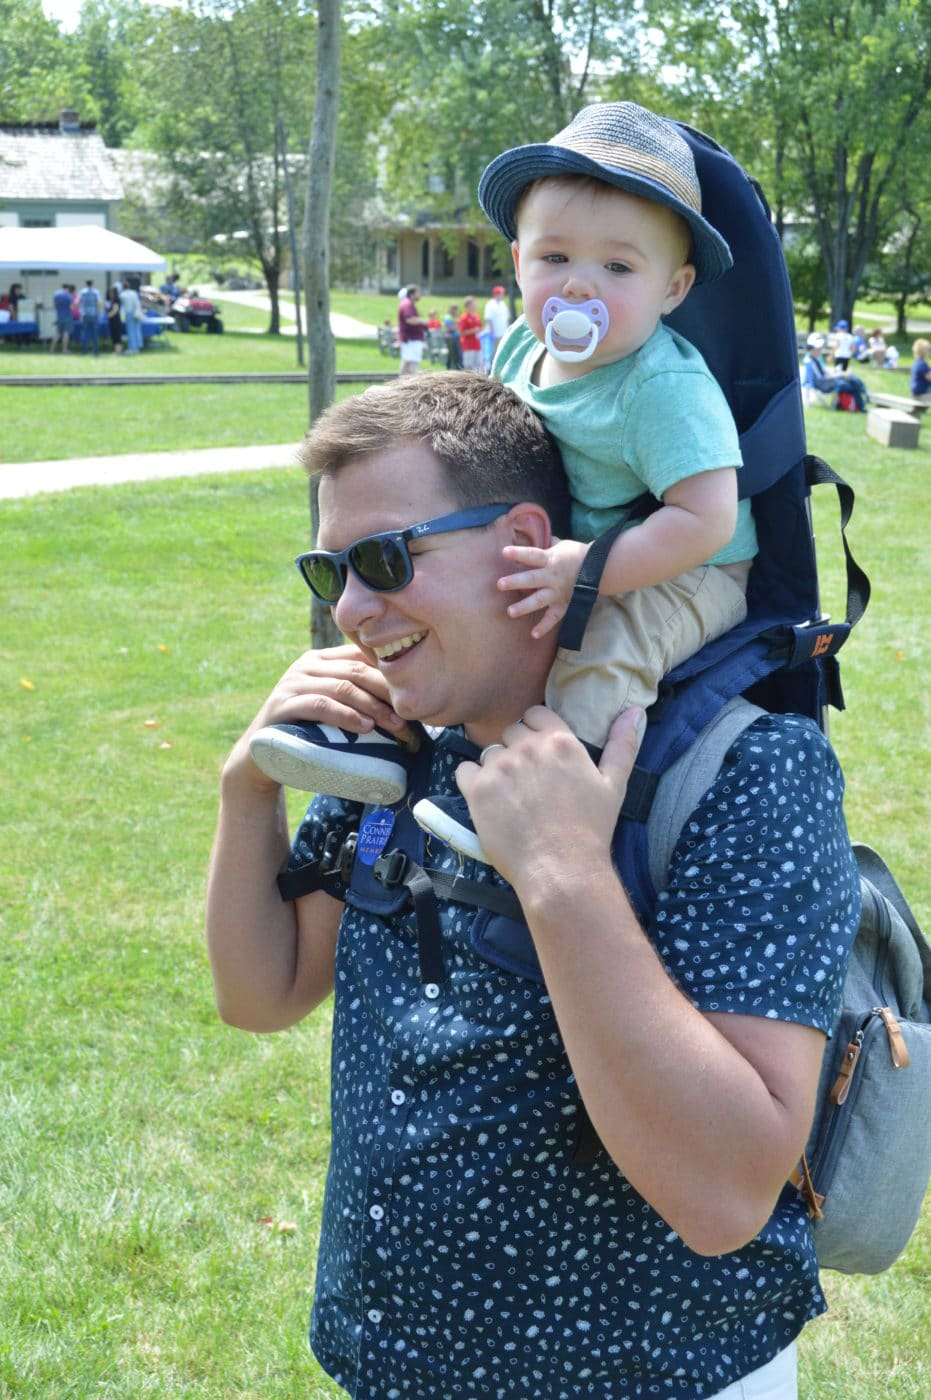 Andrew Bradford, Vice President and Chief Advancement Officer at Conner Prairie with his son